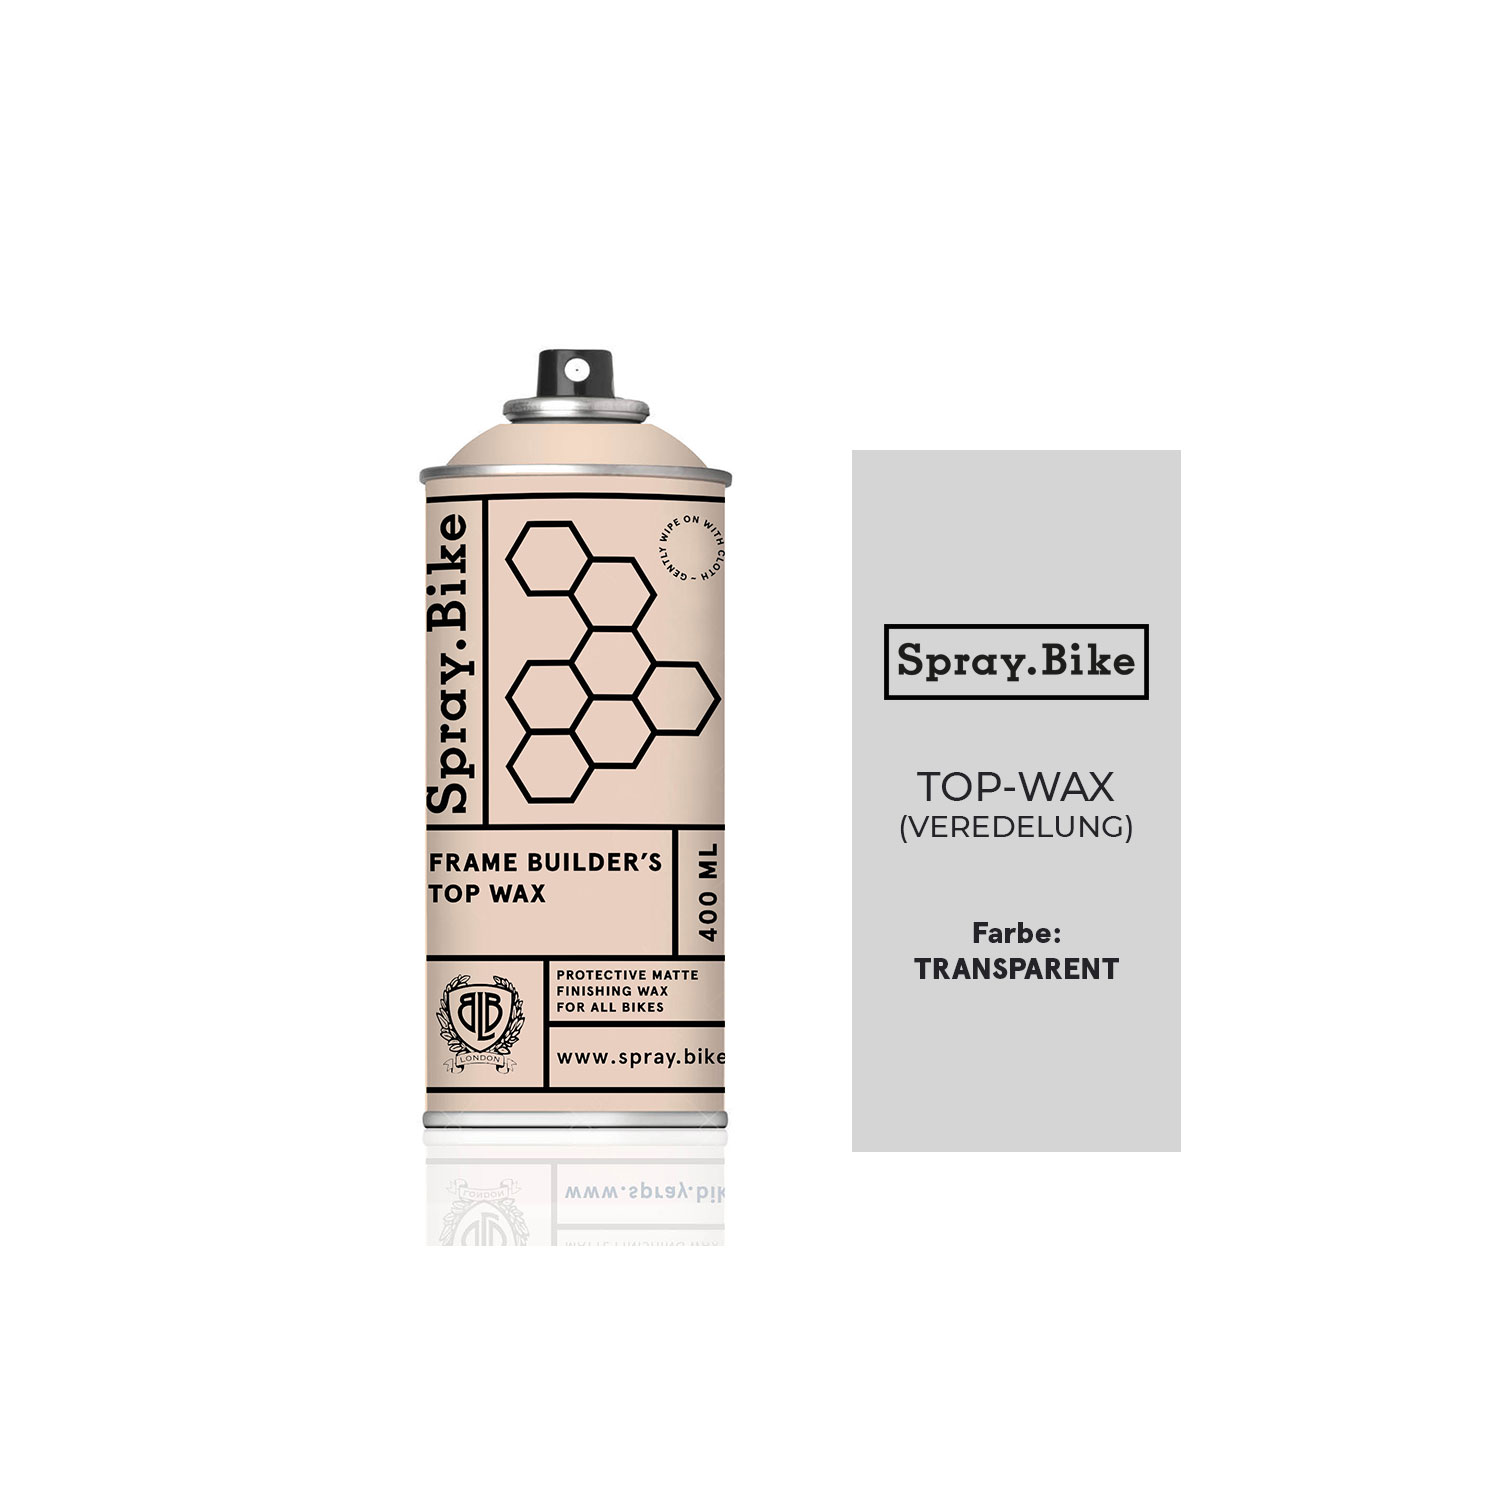 SPRAY.BIKE 400 ML P&F - Top Wax – Bild 1